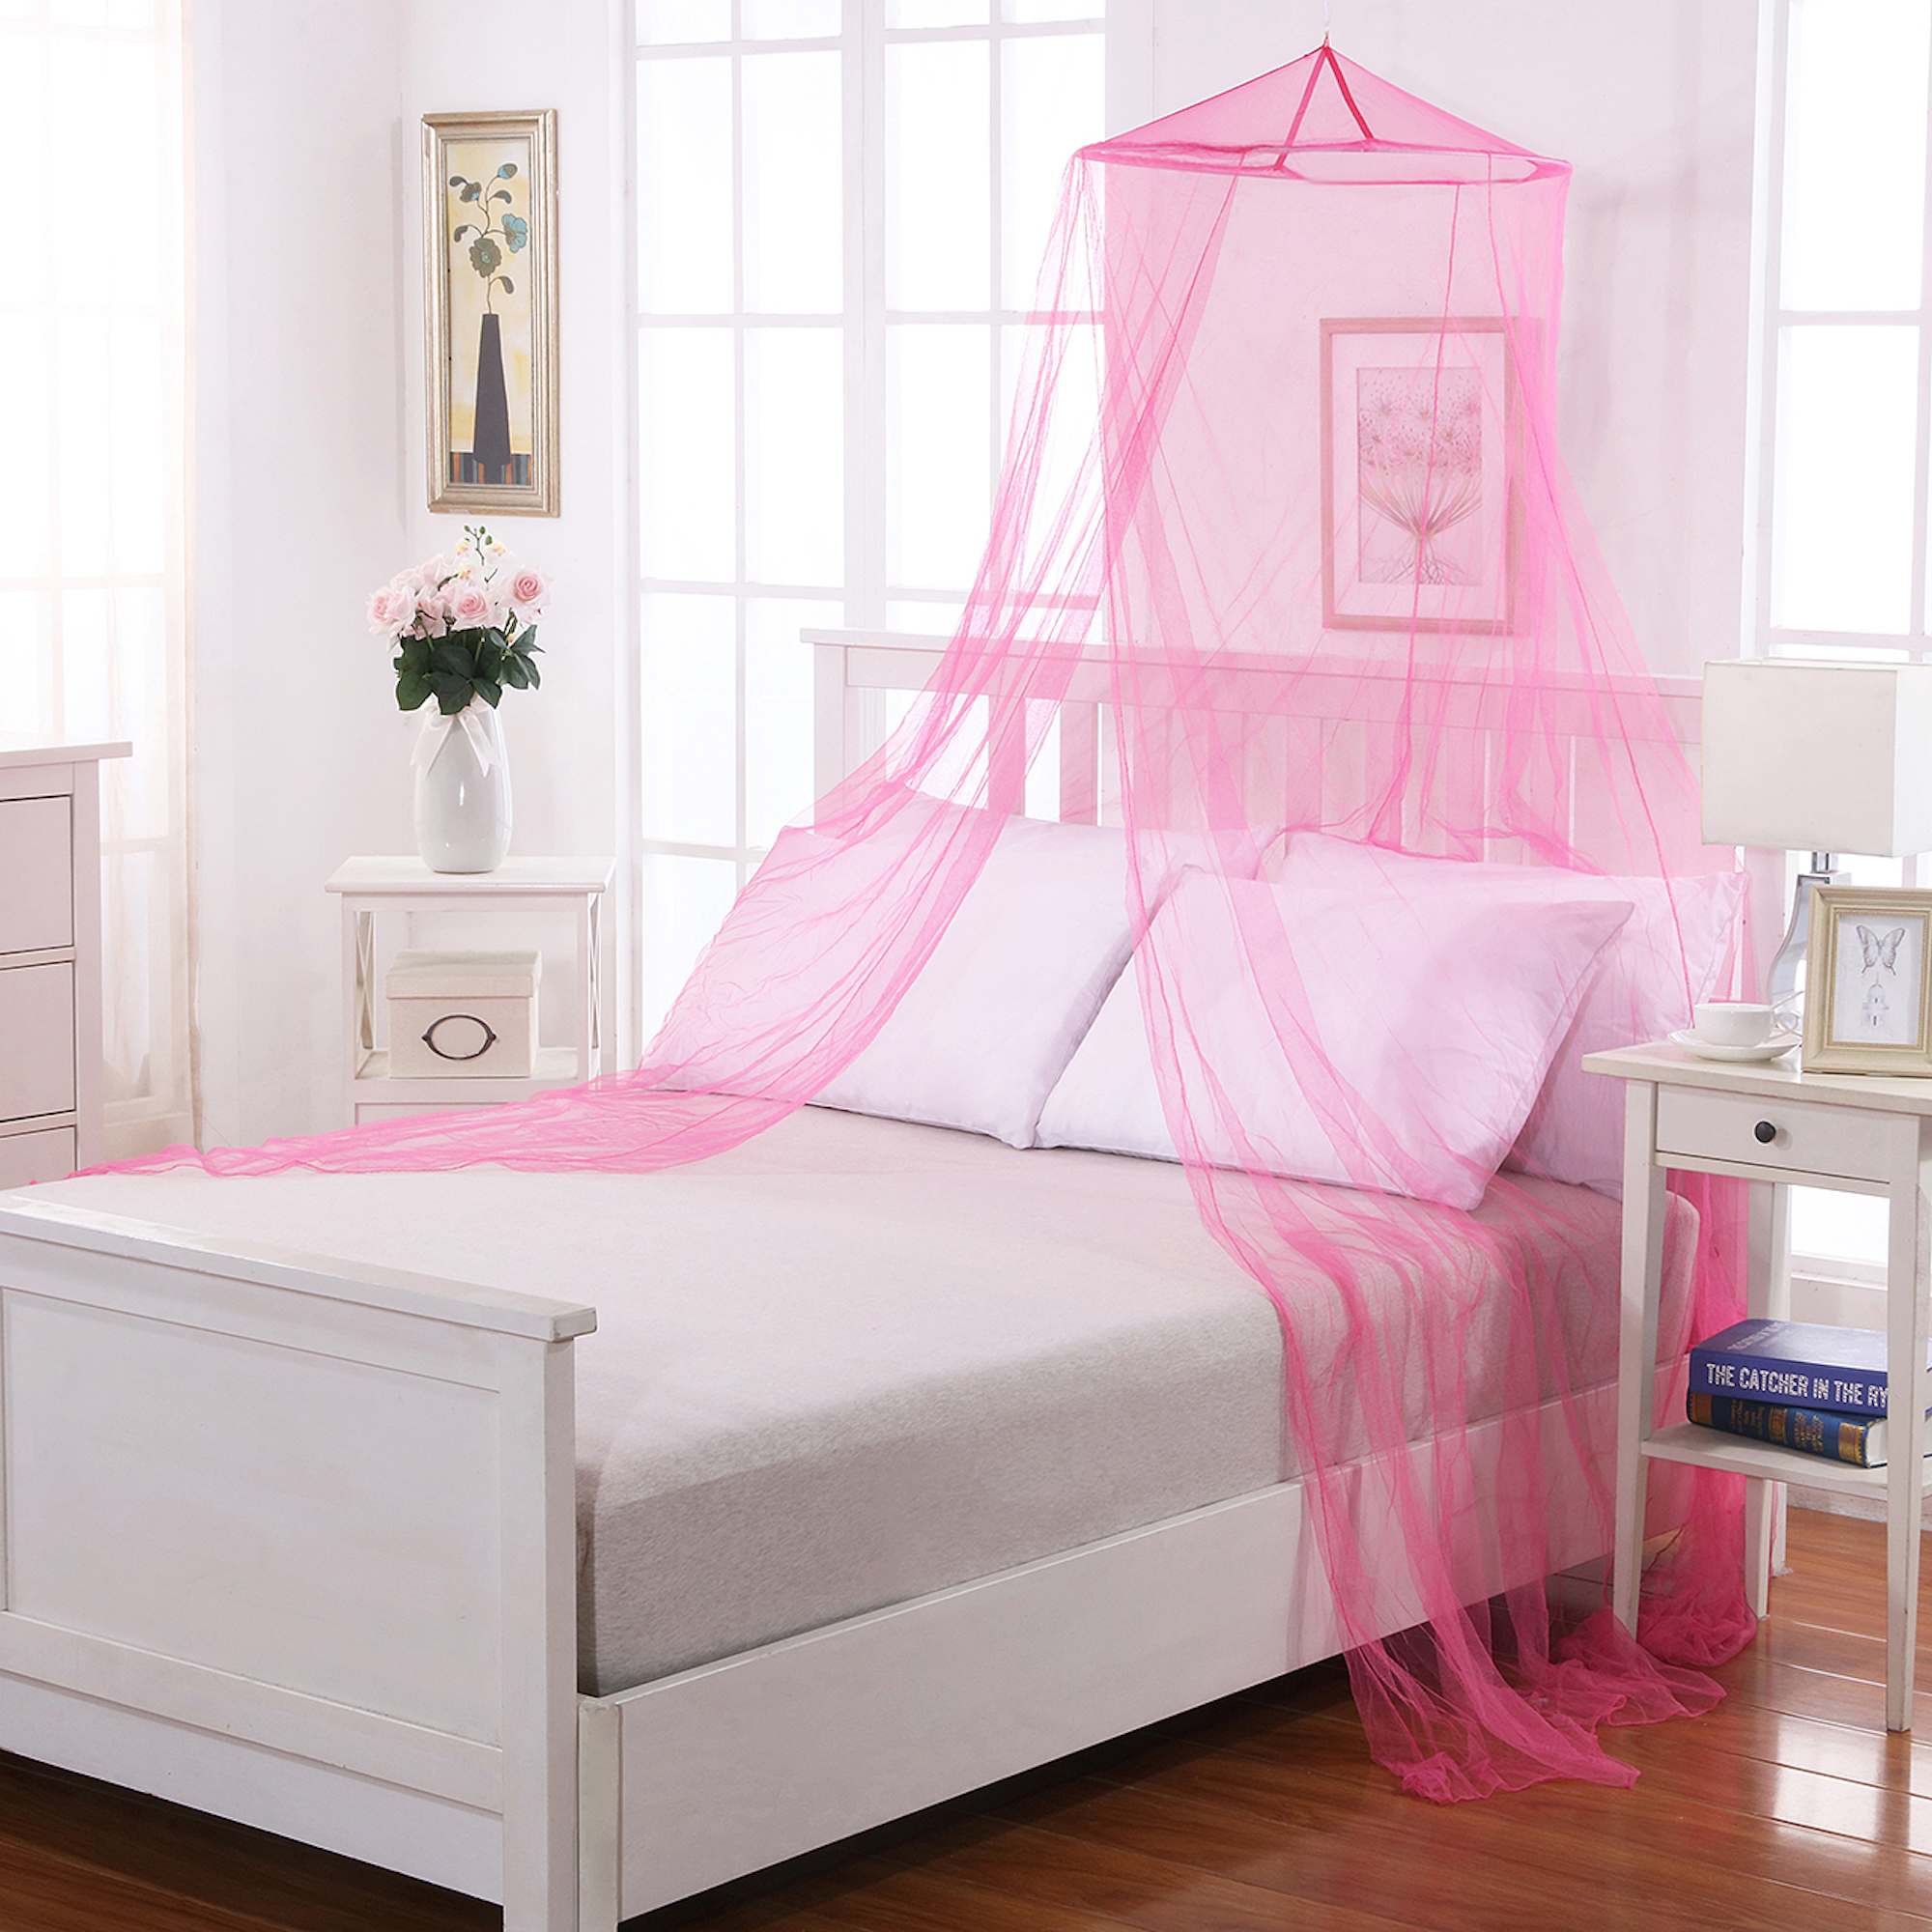 Kids Round Collapsible Wire Hoop Mosquito Net Bed Canopy & Kids Round Collapsible Wire Hoop Mosquito Net Bed Canopy - Walmart.com